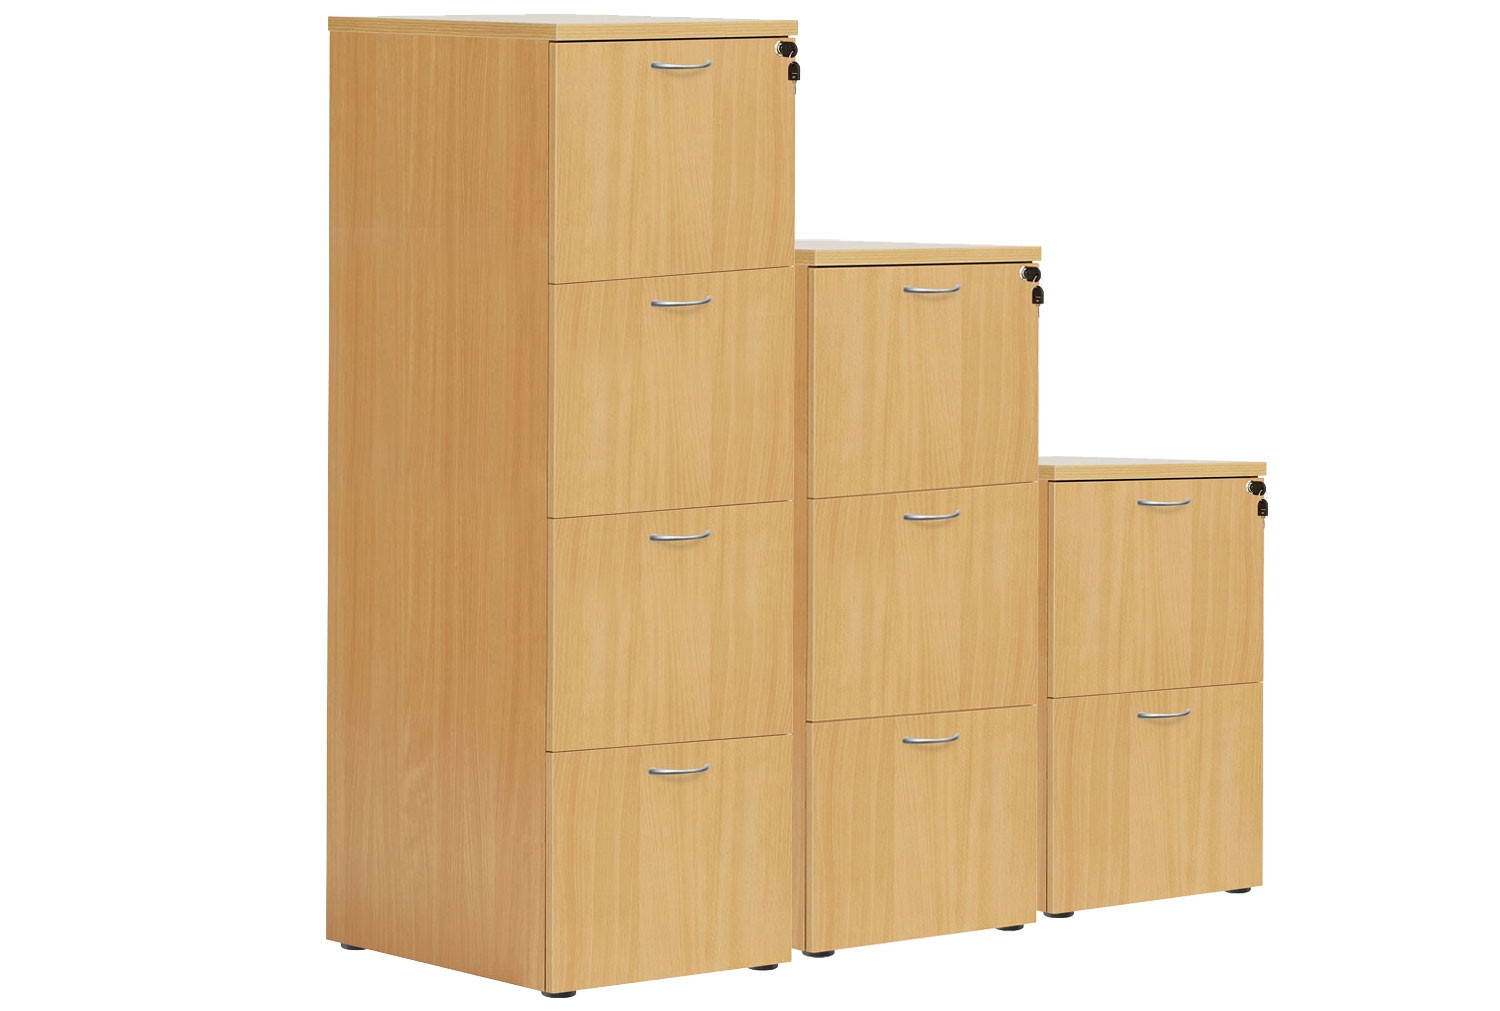 Next-Day Proteus Filing Cabinet